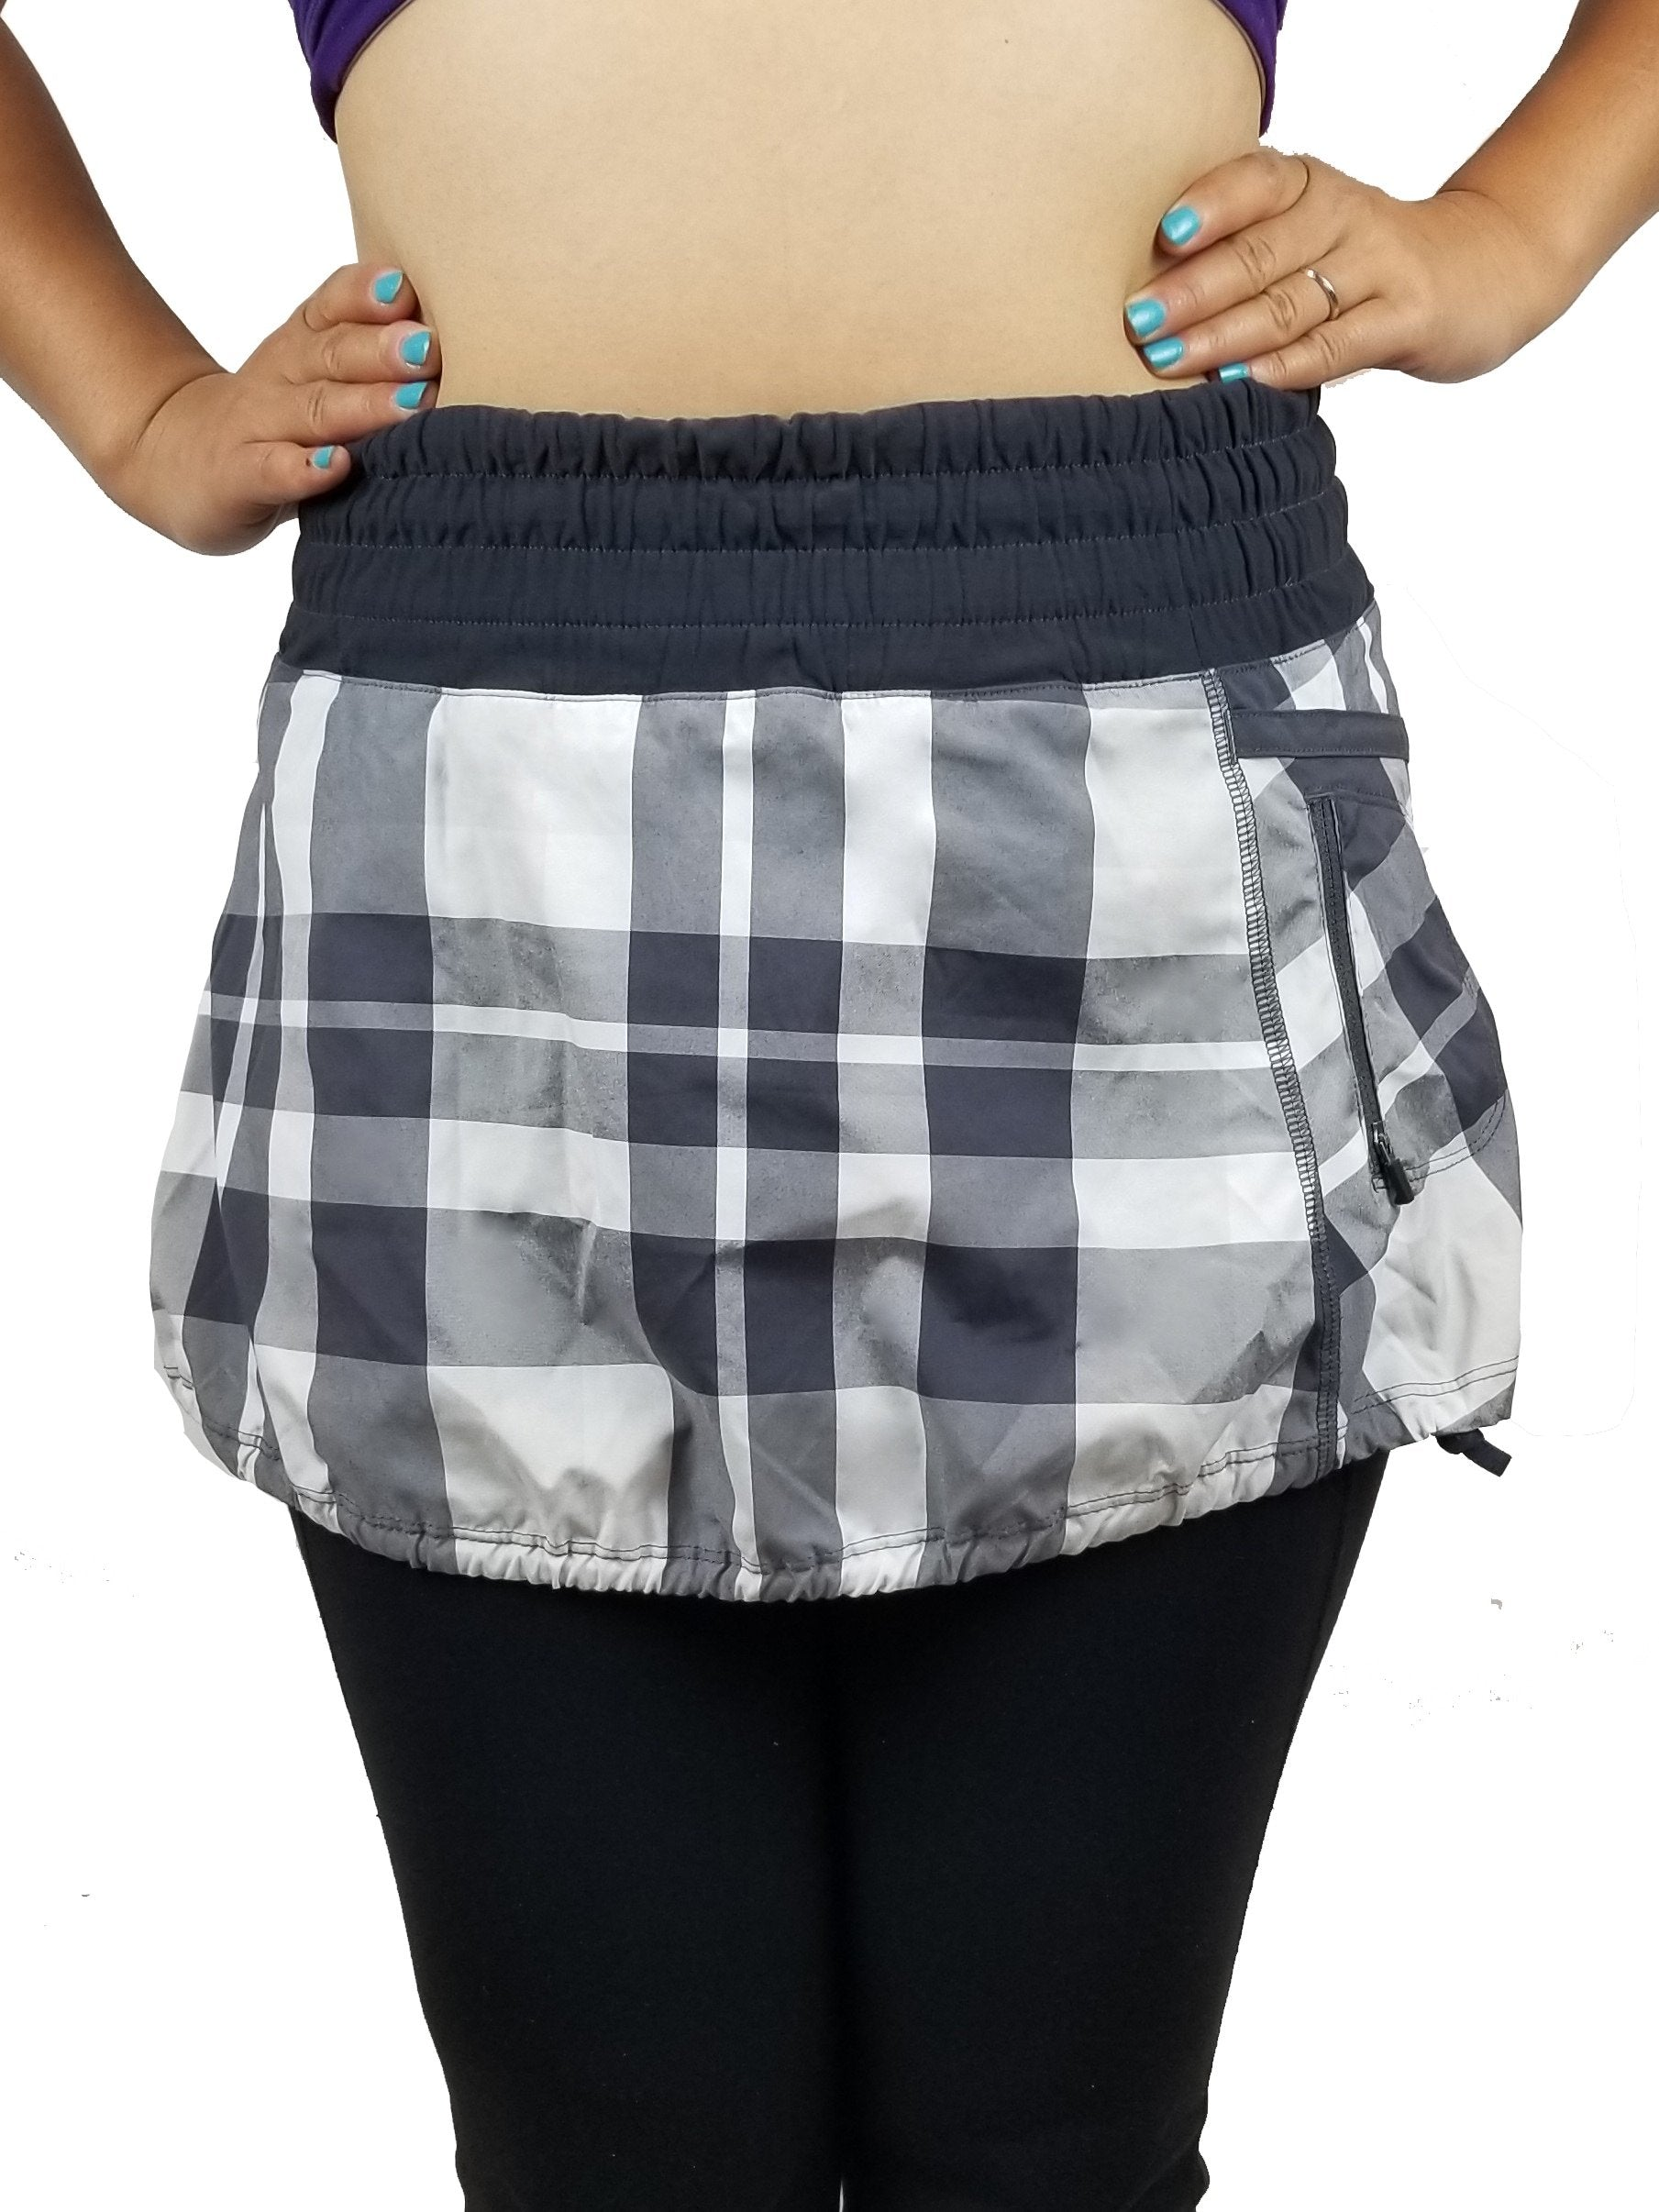 Lululemon Plaid Tracker Skirt, Vancouver street wear/Yoga pants. Lululemon size 2. https://info.lululemon.com/help/size-chart, Black, Grey, Polyester, women's Activewear, women's Black, Grey Activewear, Lululemon women's Activewear, Yoga, yoga pants, athletic wear, work out, comfortable pants, fitness, fit